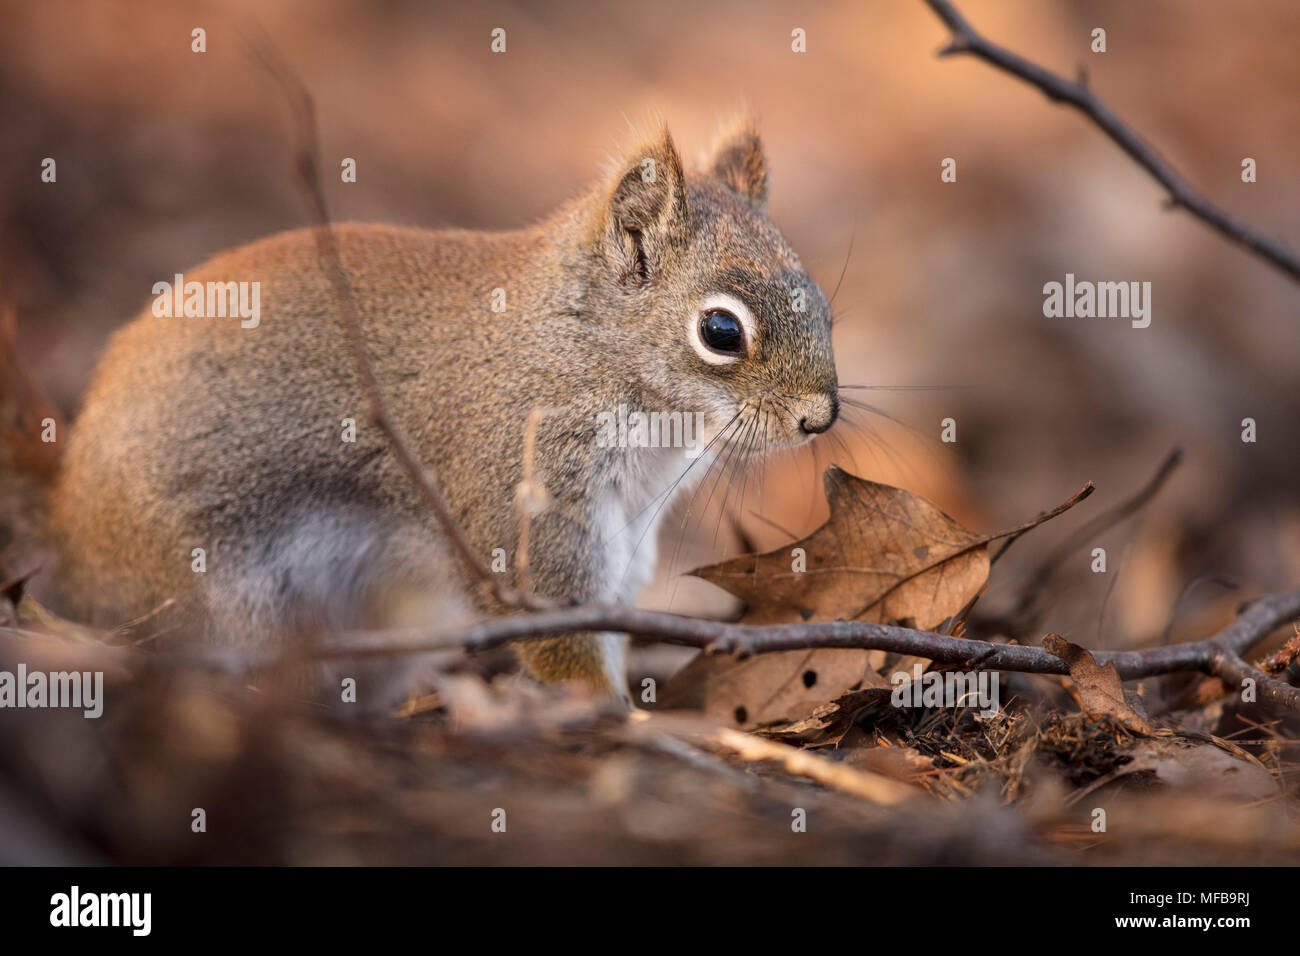 MAYNOOTH, ONTARIO, CANADA - April 23, 2018: A red squirrel (Tamiasciurus hudsonicus), part of the Sciuridae family forages for food.  ( Ryan Carter ) - Stock Image